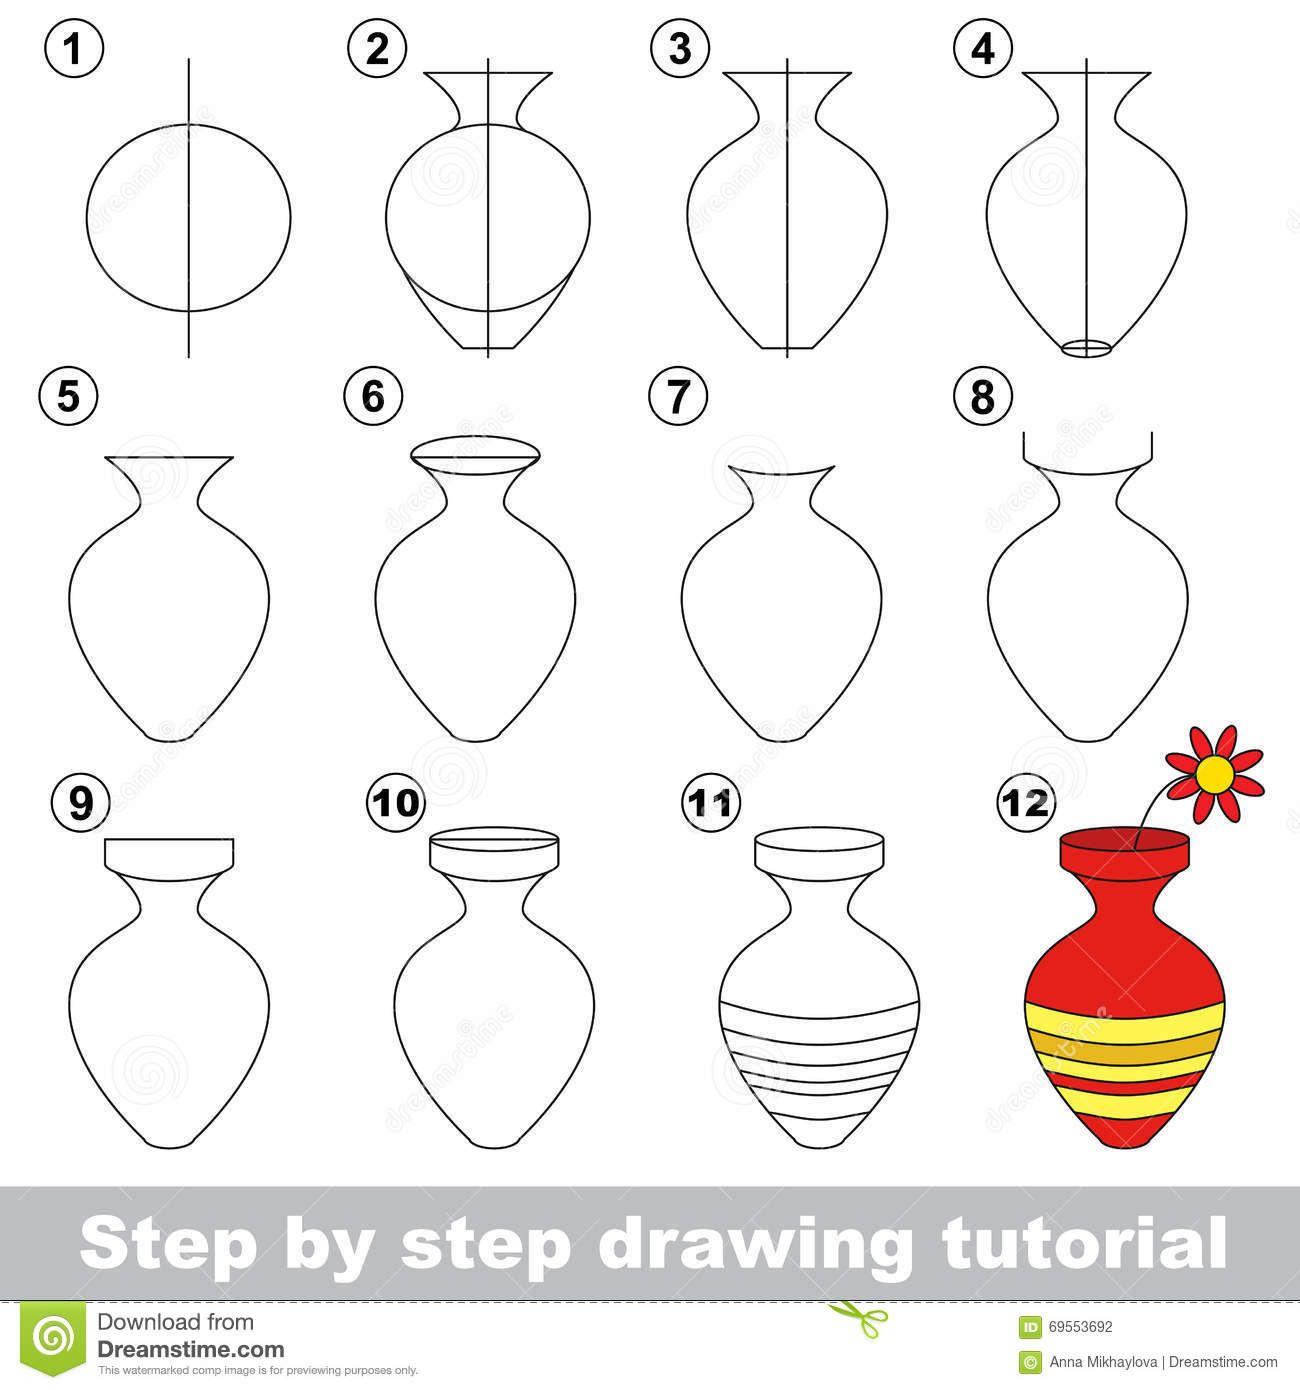 Drawing Tutorial For Children How To Draw The Vase With Flower Full Hd Painting